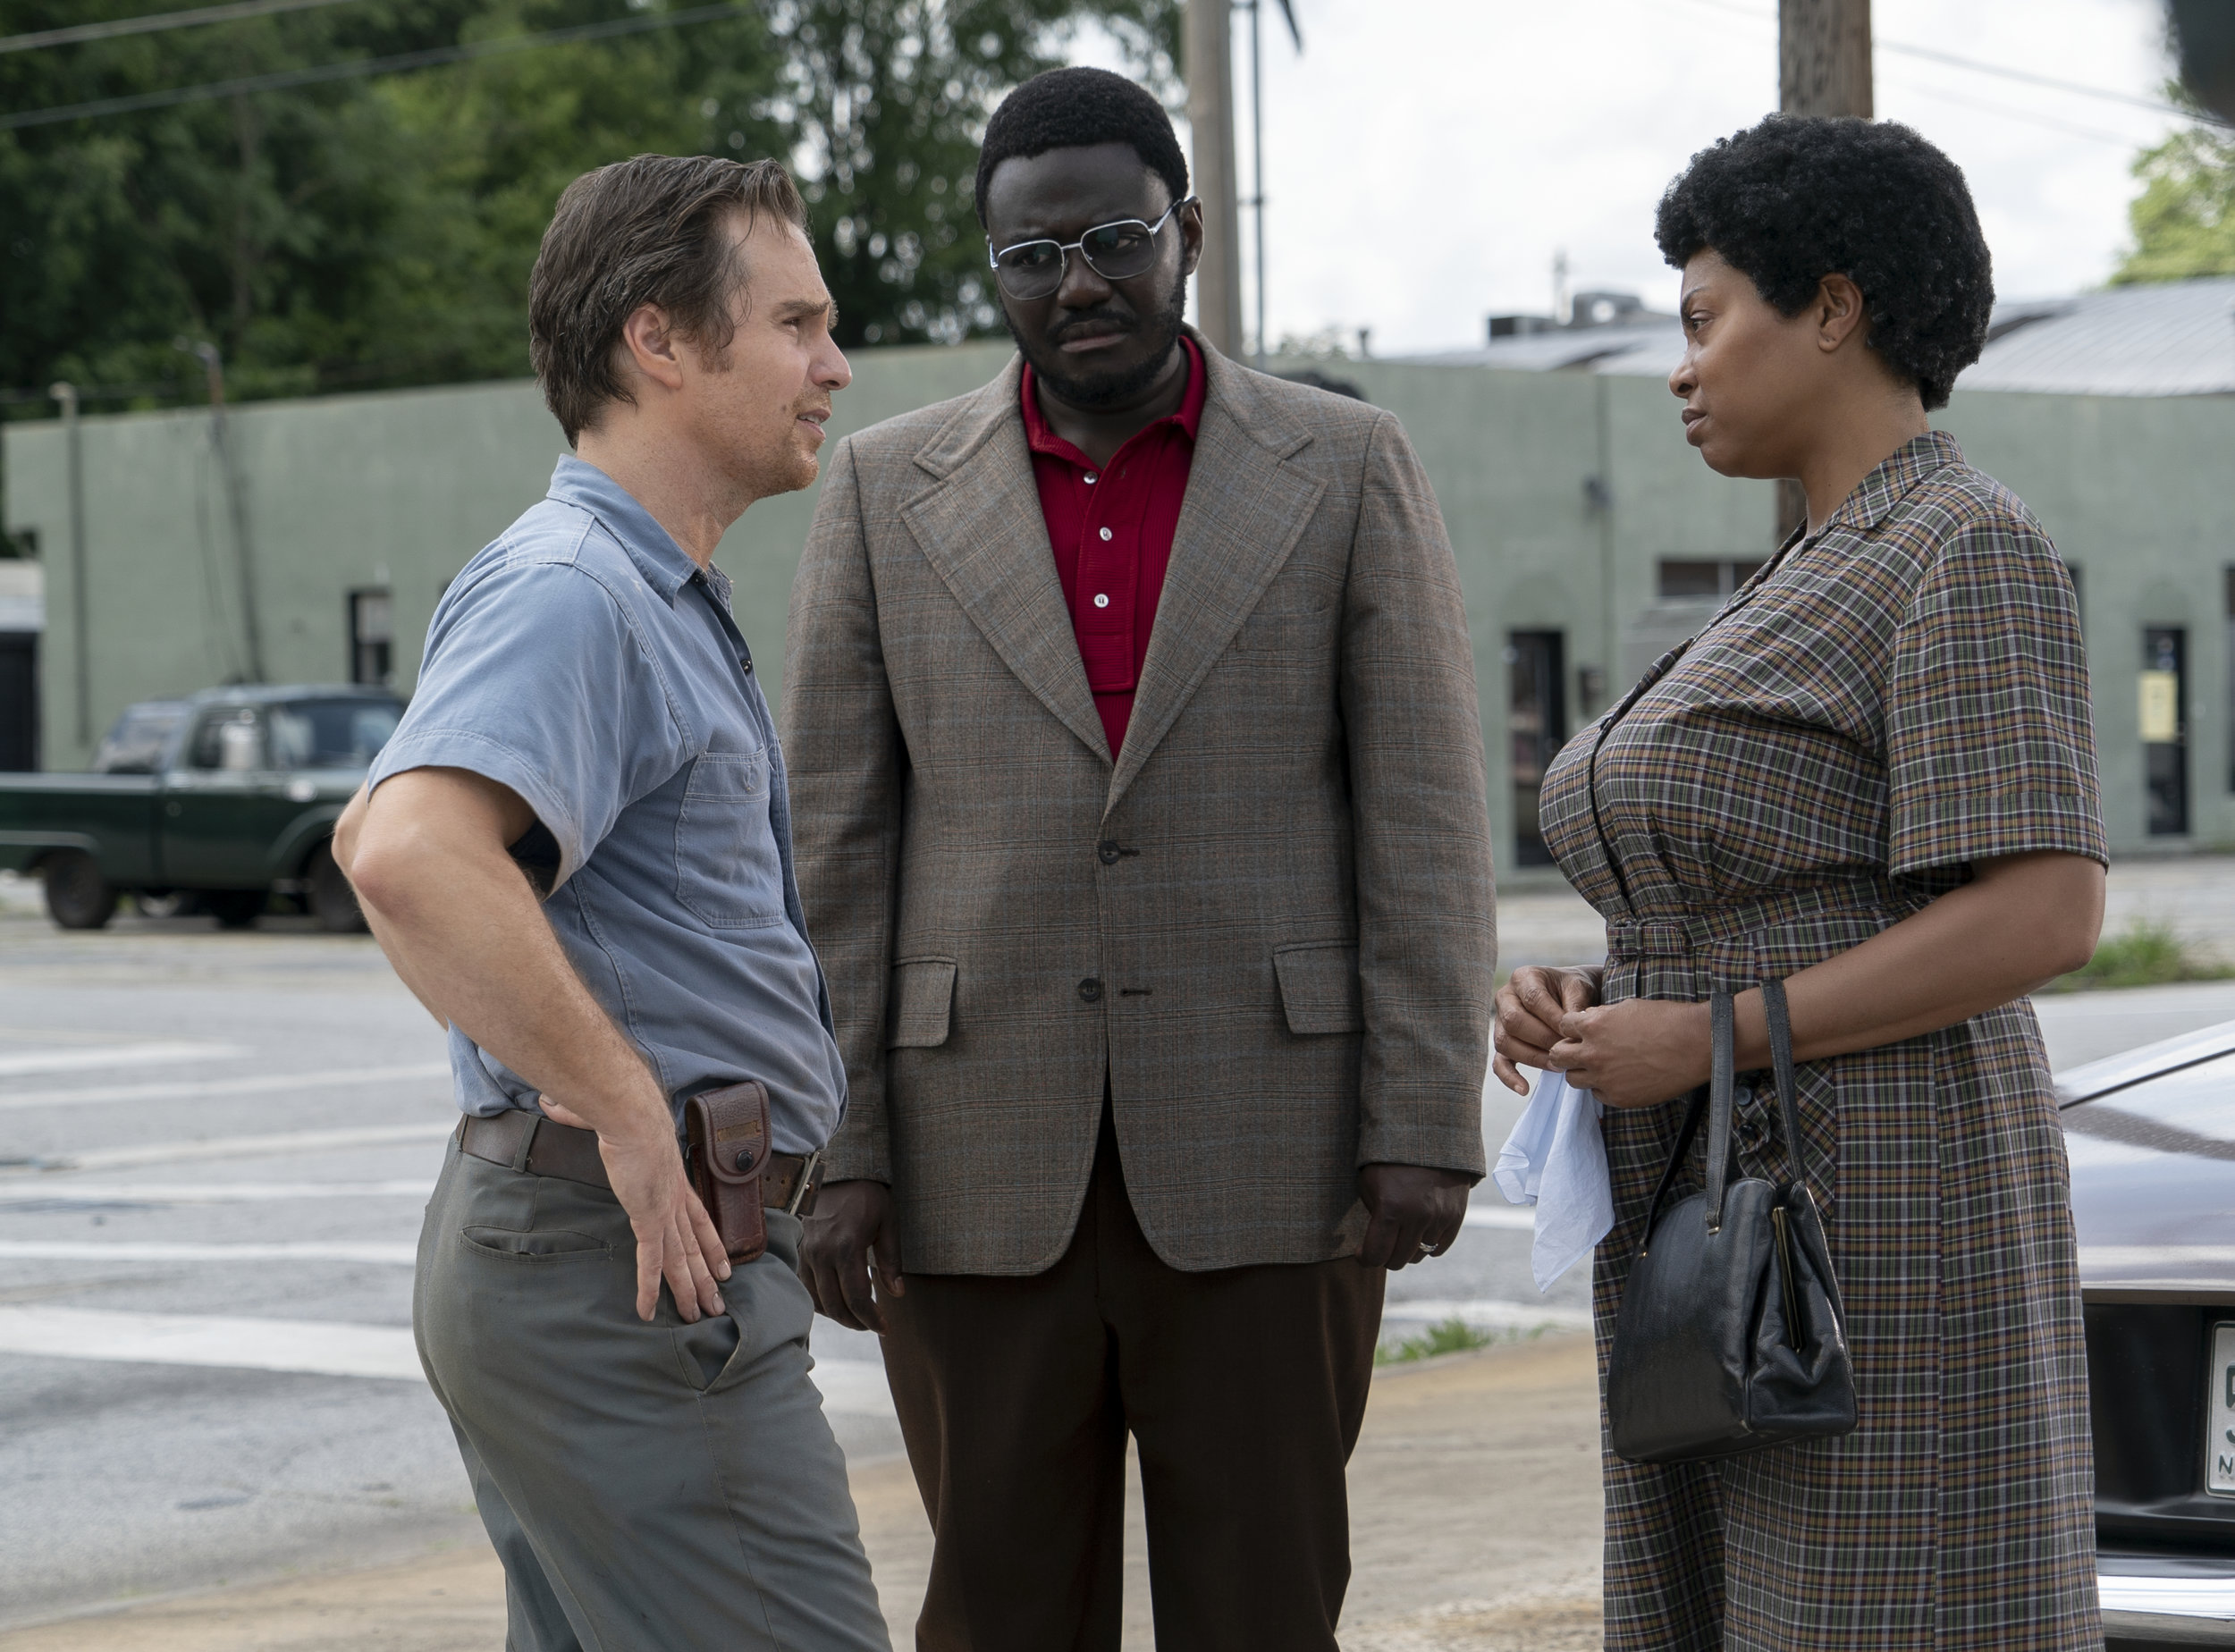 "C.P. Ellis (Sam Rockwell, left), a local leader of the Ku Klux Klan, talks to civil rights activist Ann Atwater (Taraji P. Henson, right) and negotiator Bill Riddick (Babou Ceesay, center) over school integration in Durham, N.C., in 1971, depicted in the drama ""The Best of Enemies."" (Photo by Annette Brown, courtesy STX Films)"